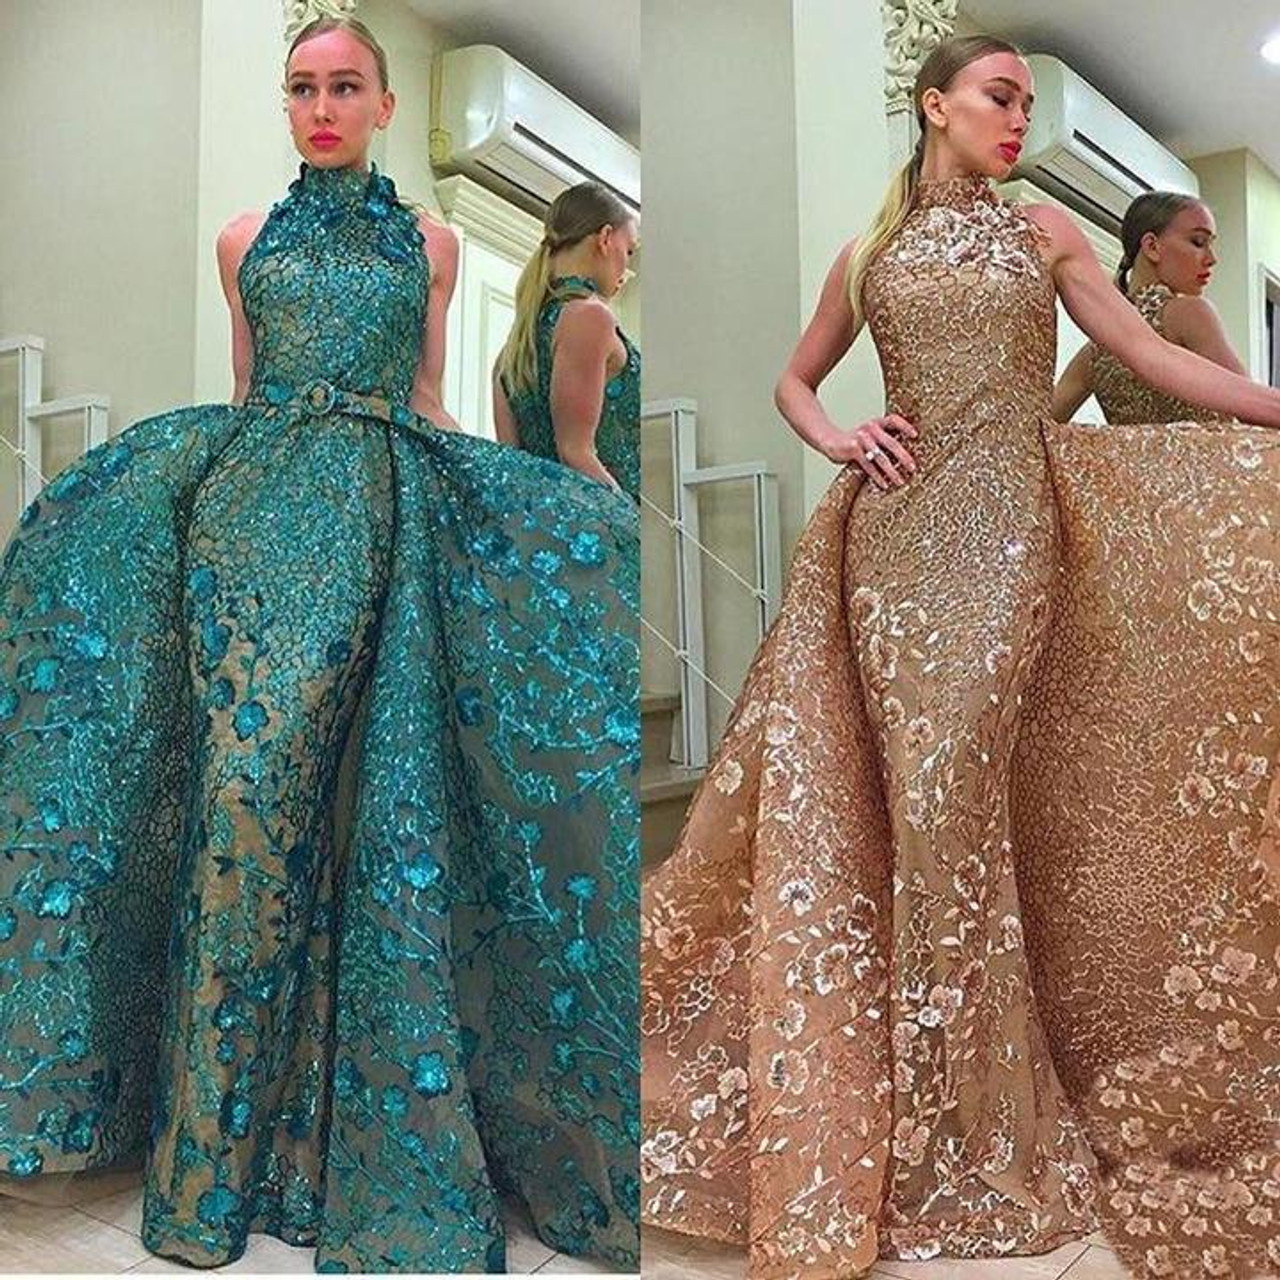 MNM Couture 2416 Sleeveless Sequin Overlay Train Long Gown